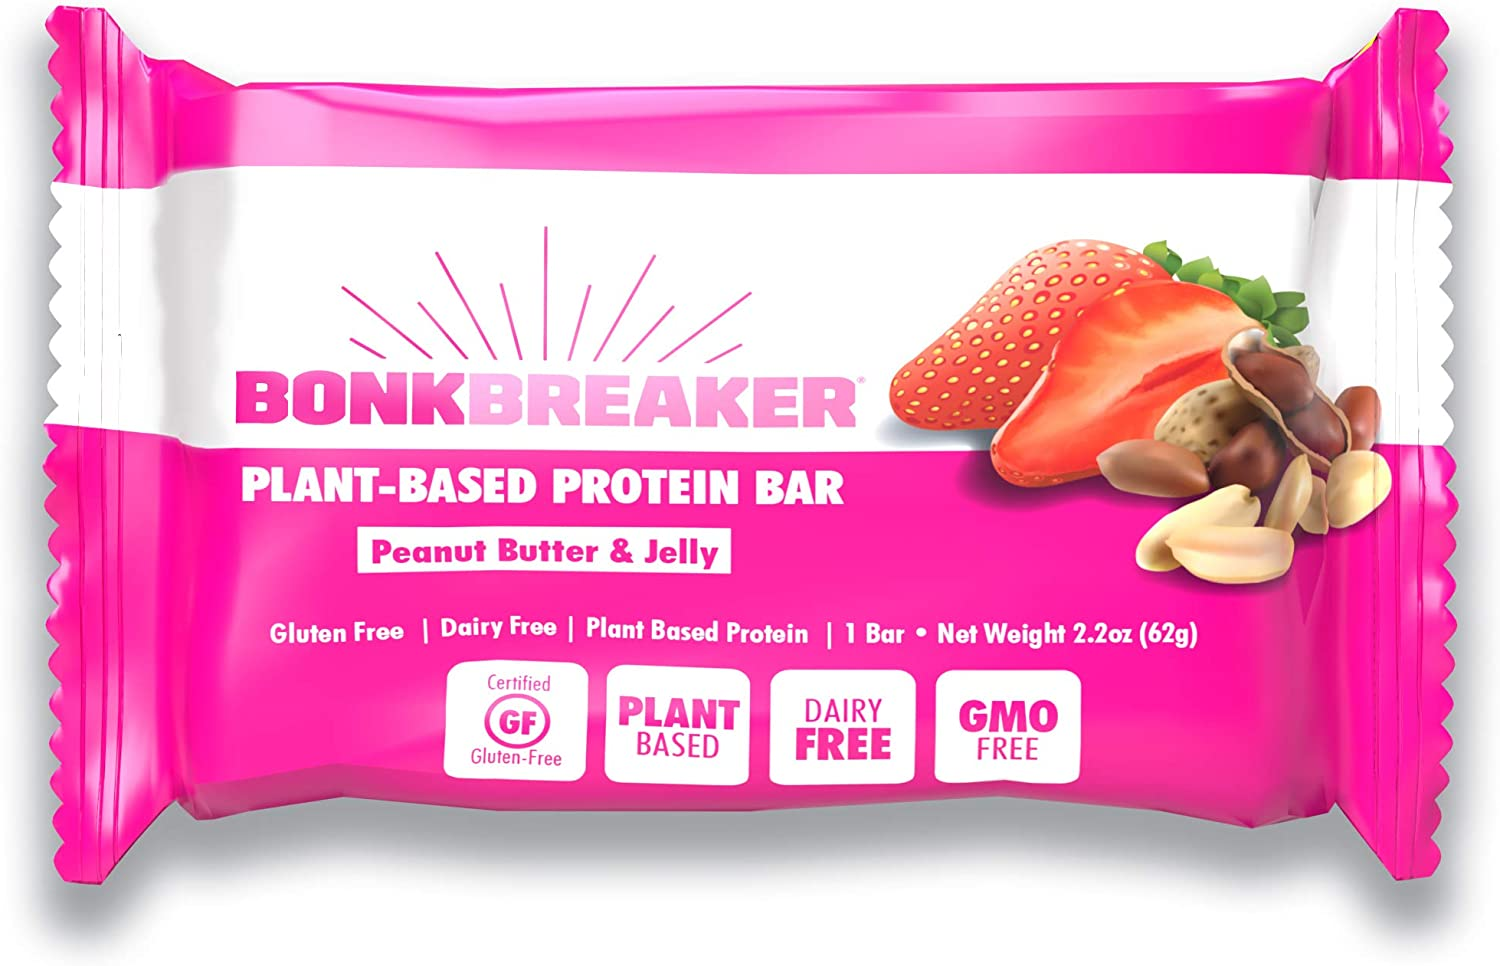 Peanut Butter & Jelly High Based Protein Bar by Bonk Breaker - Gluten Free, Dairy Free, Packed with Energy - 2.2 Oz each - 12 Bars